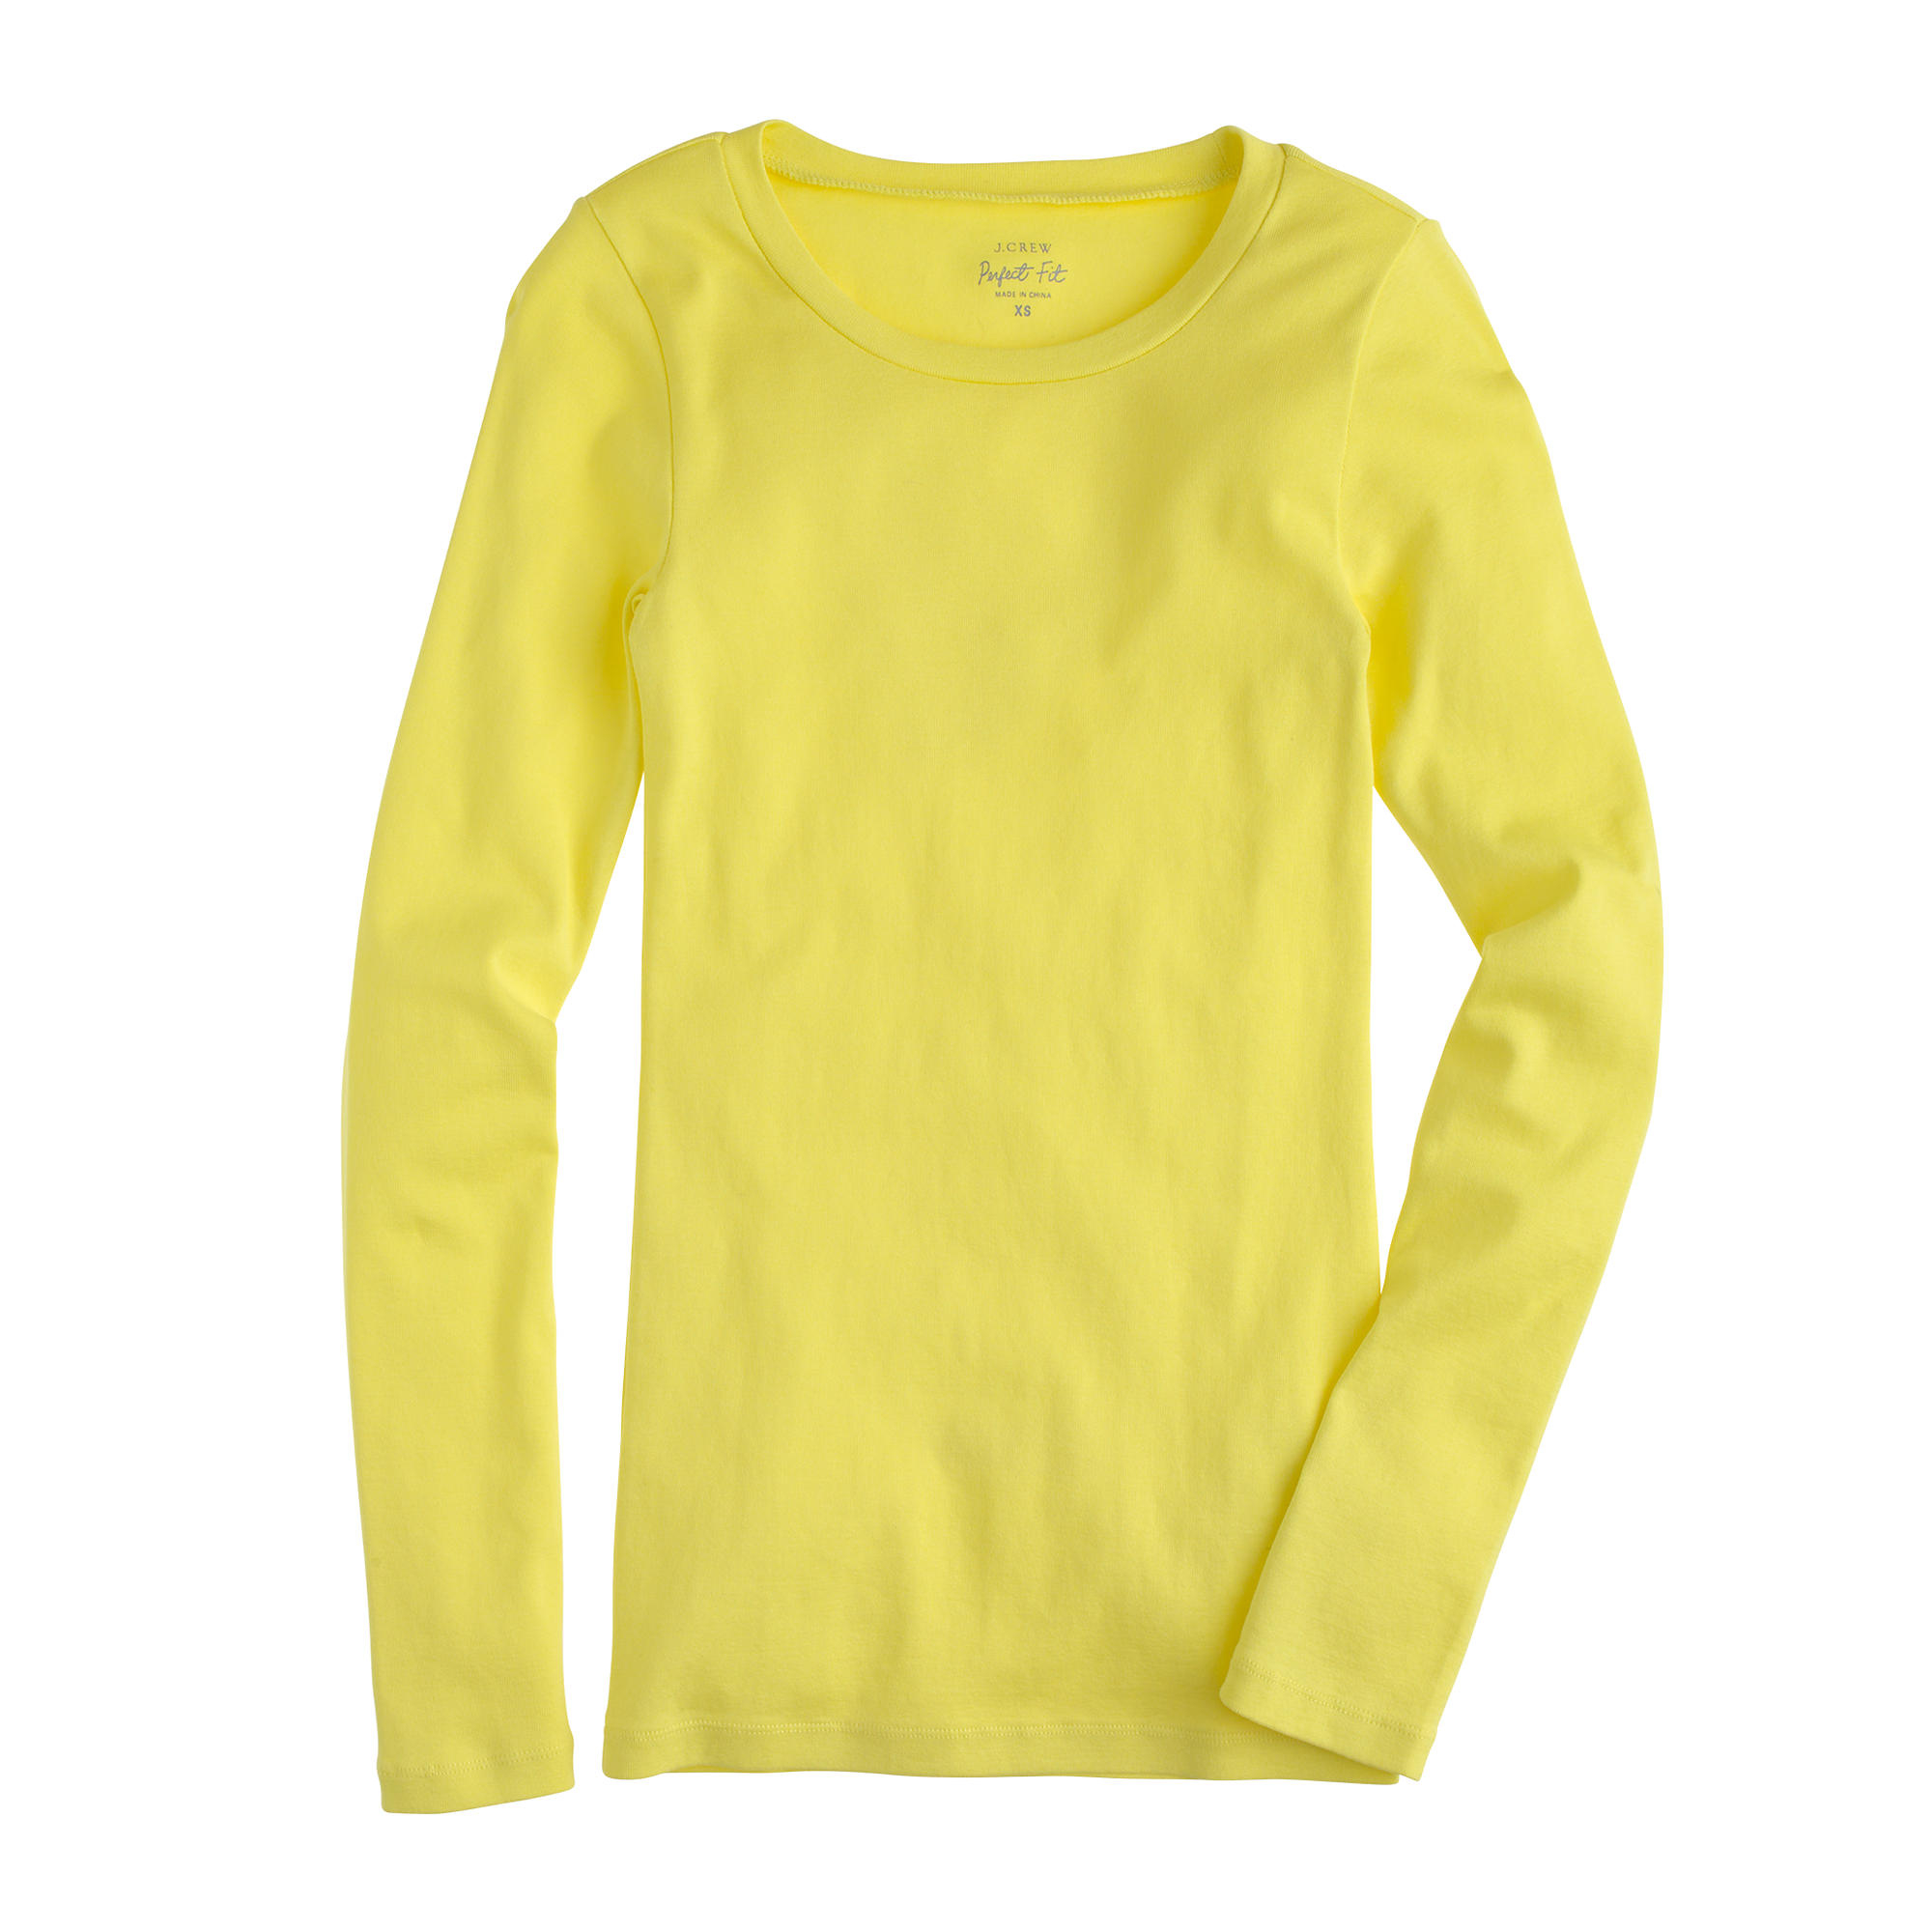 Perfect Fit Long Sleeve T Shirt In Yellow Lyst